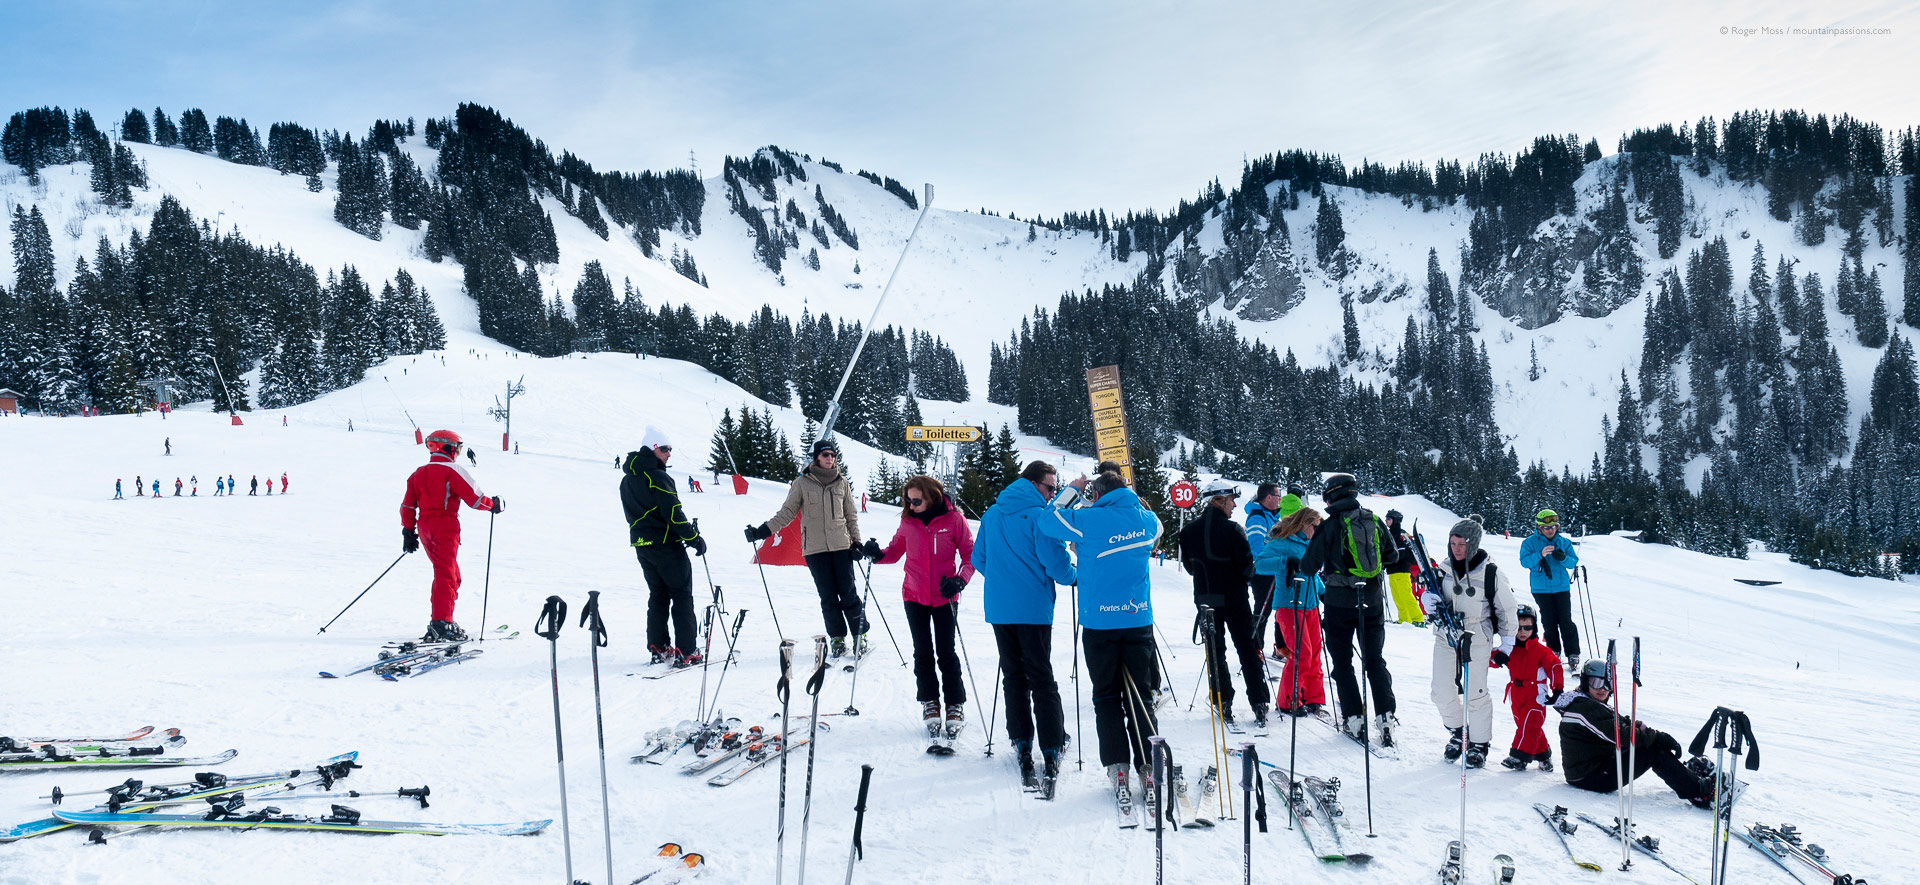 Group of skiers gathered beside pistes with mountains and forests in background at Chatel.